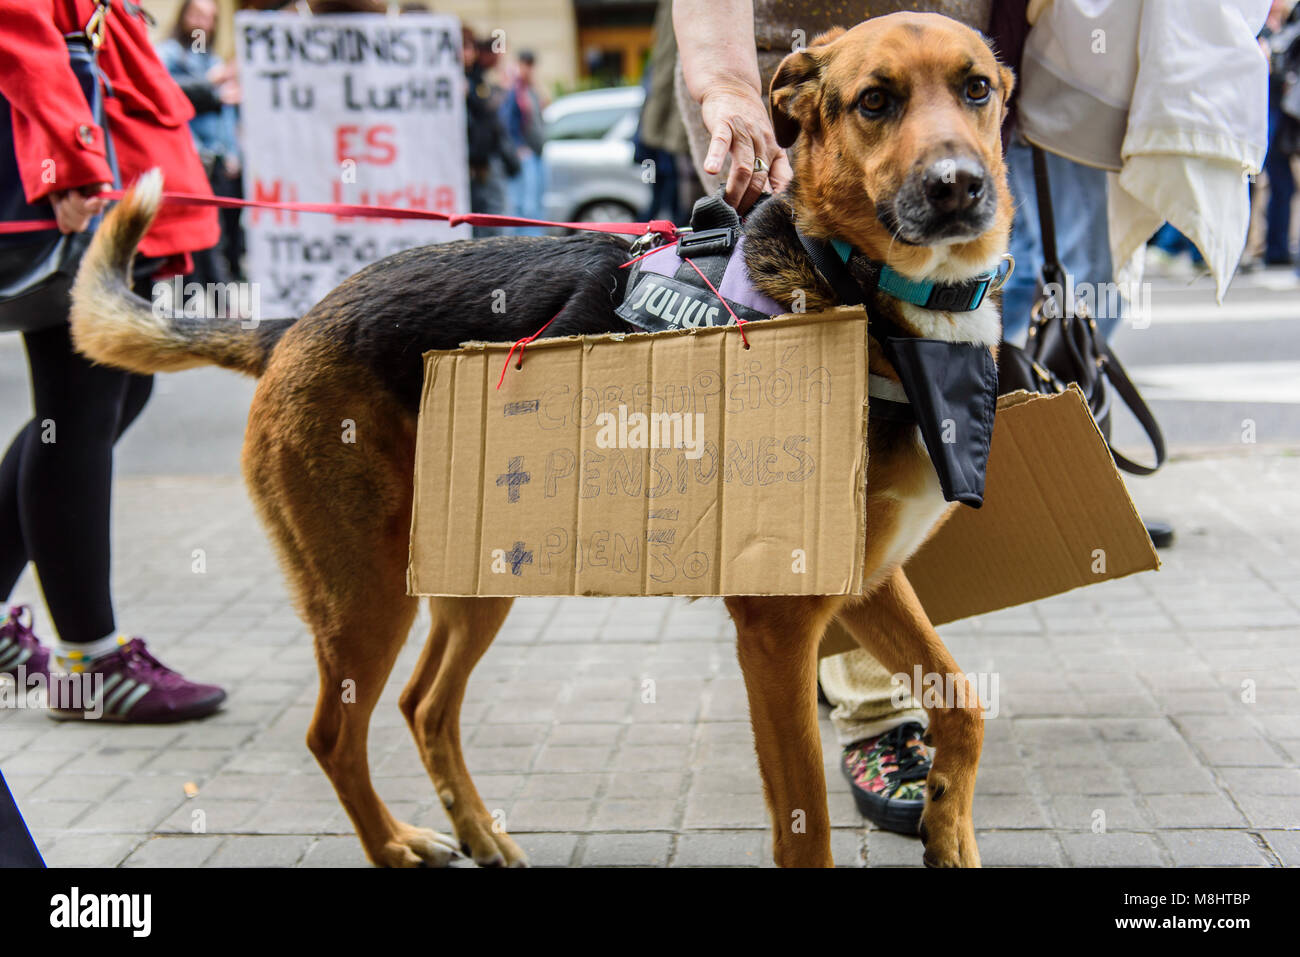 Barcelona, Catalonia, Spain. 18nd Mar, 2018. A dog in the demonstration for fair pensions. Pensioners & young - Stock Image